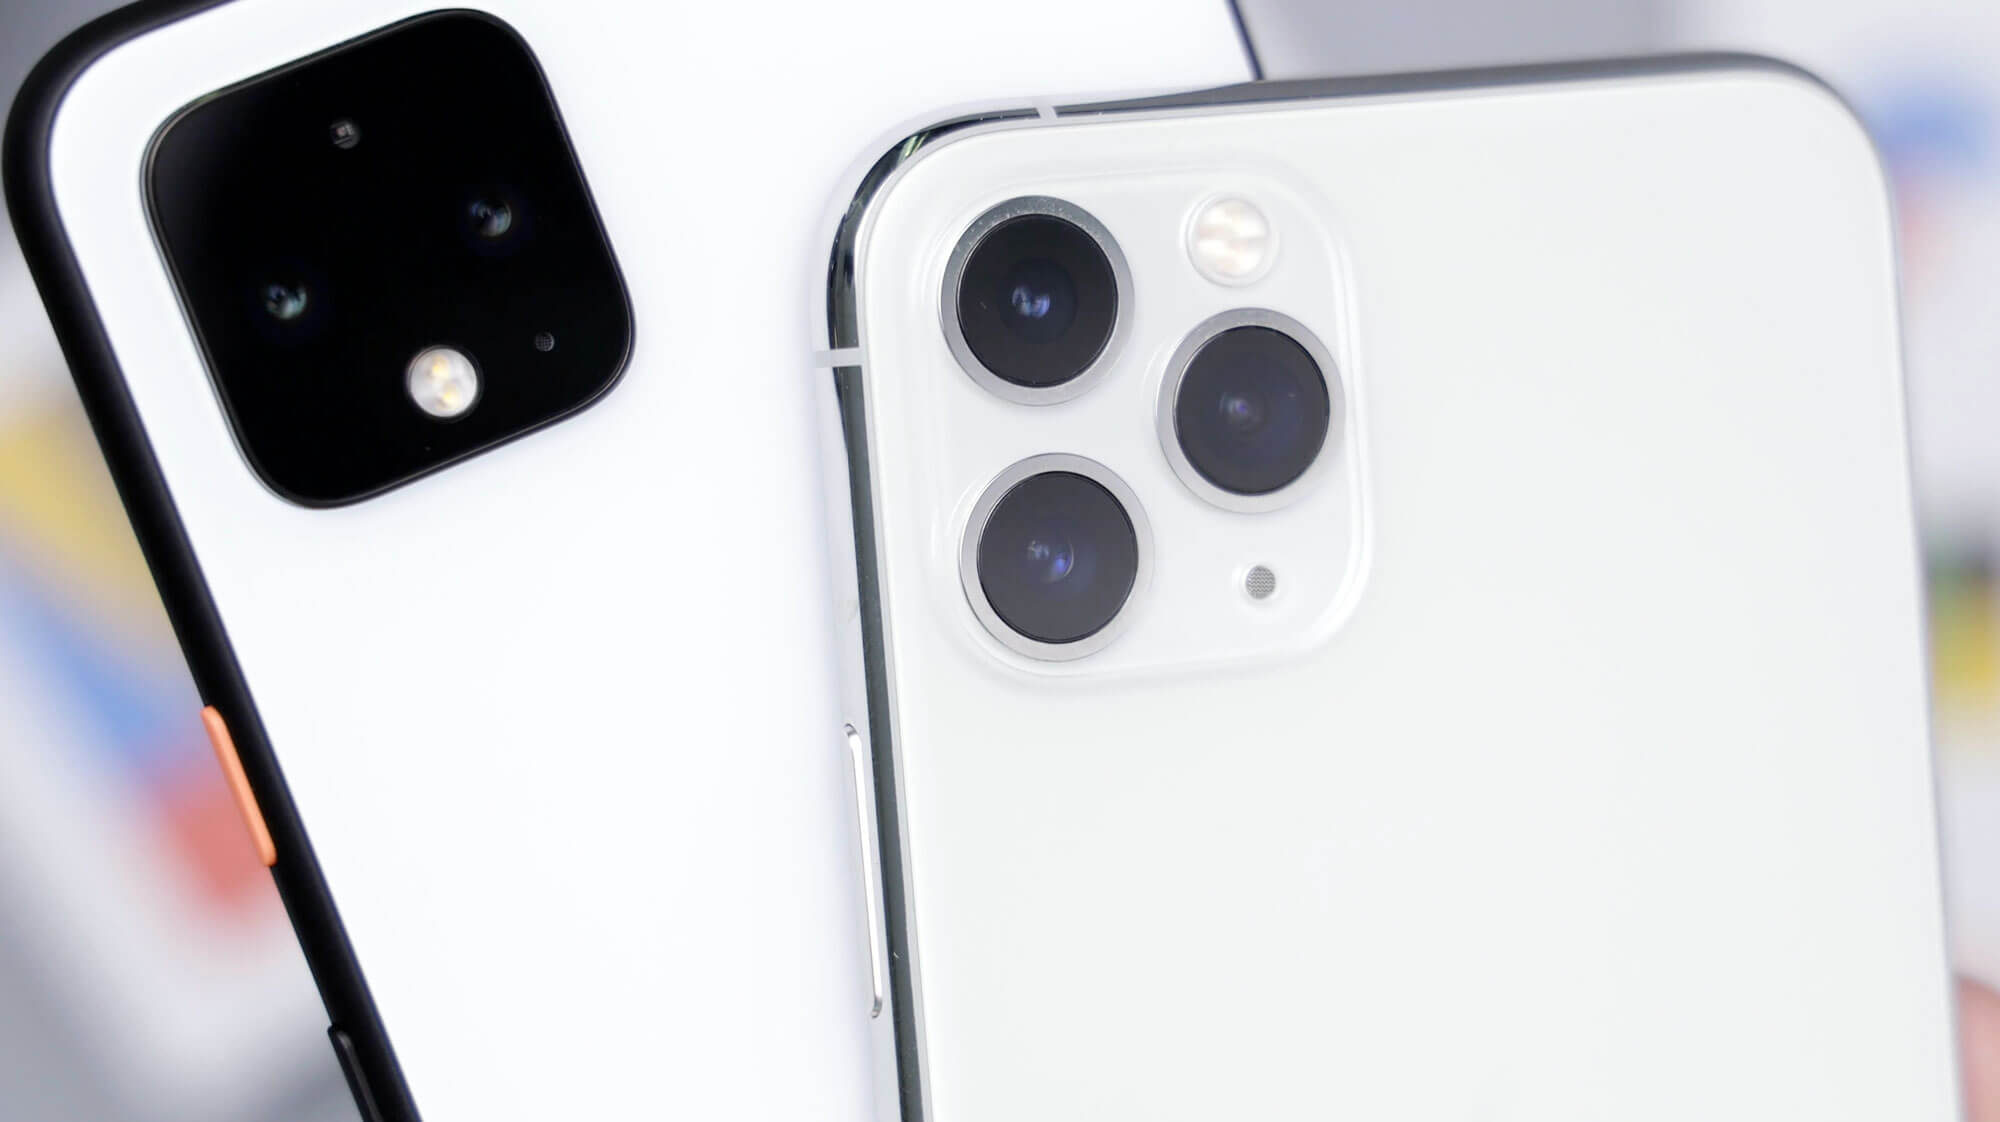 Modern camera phones use software to improve image quality